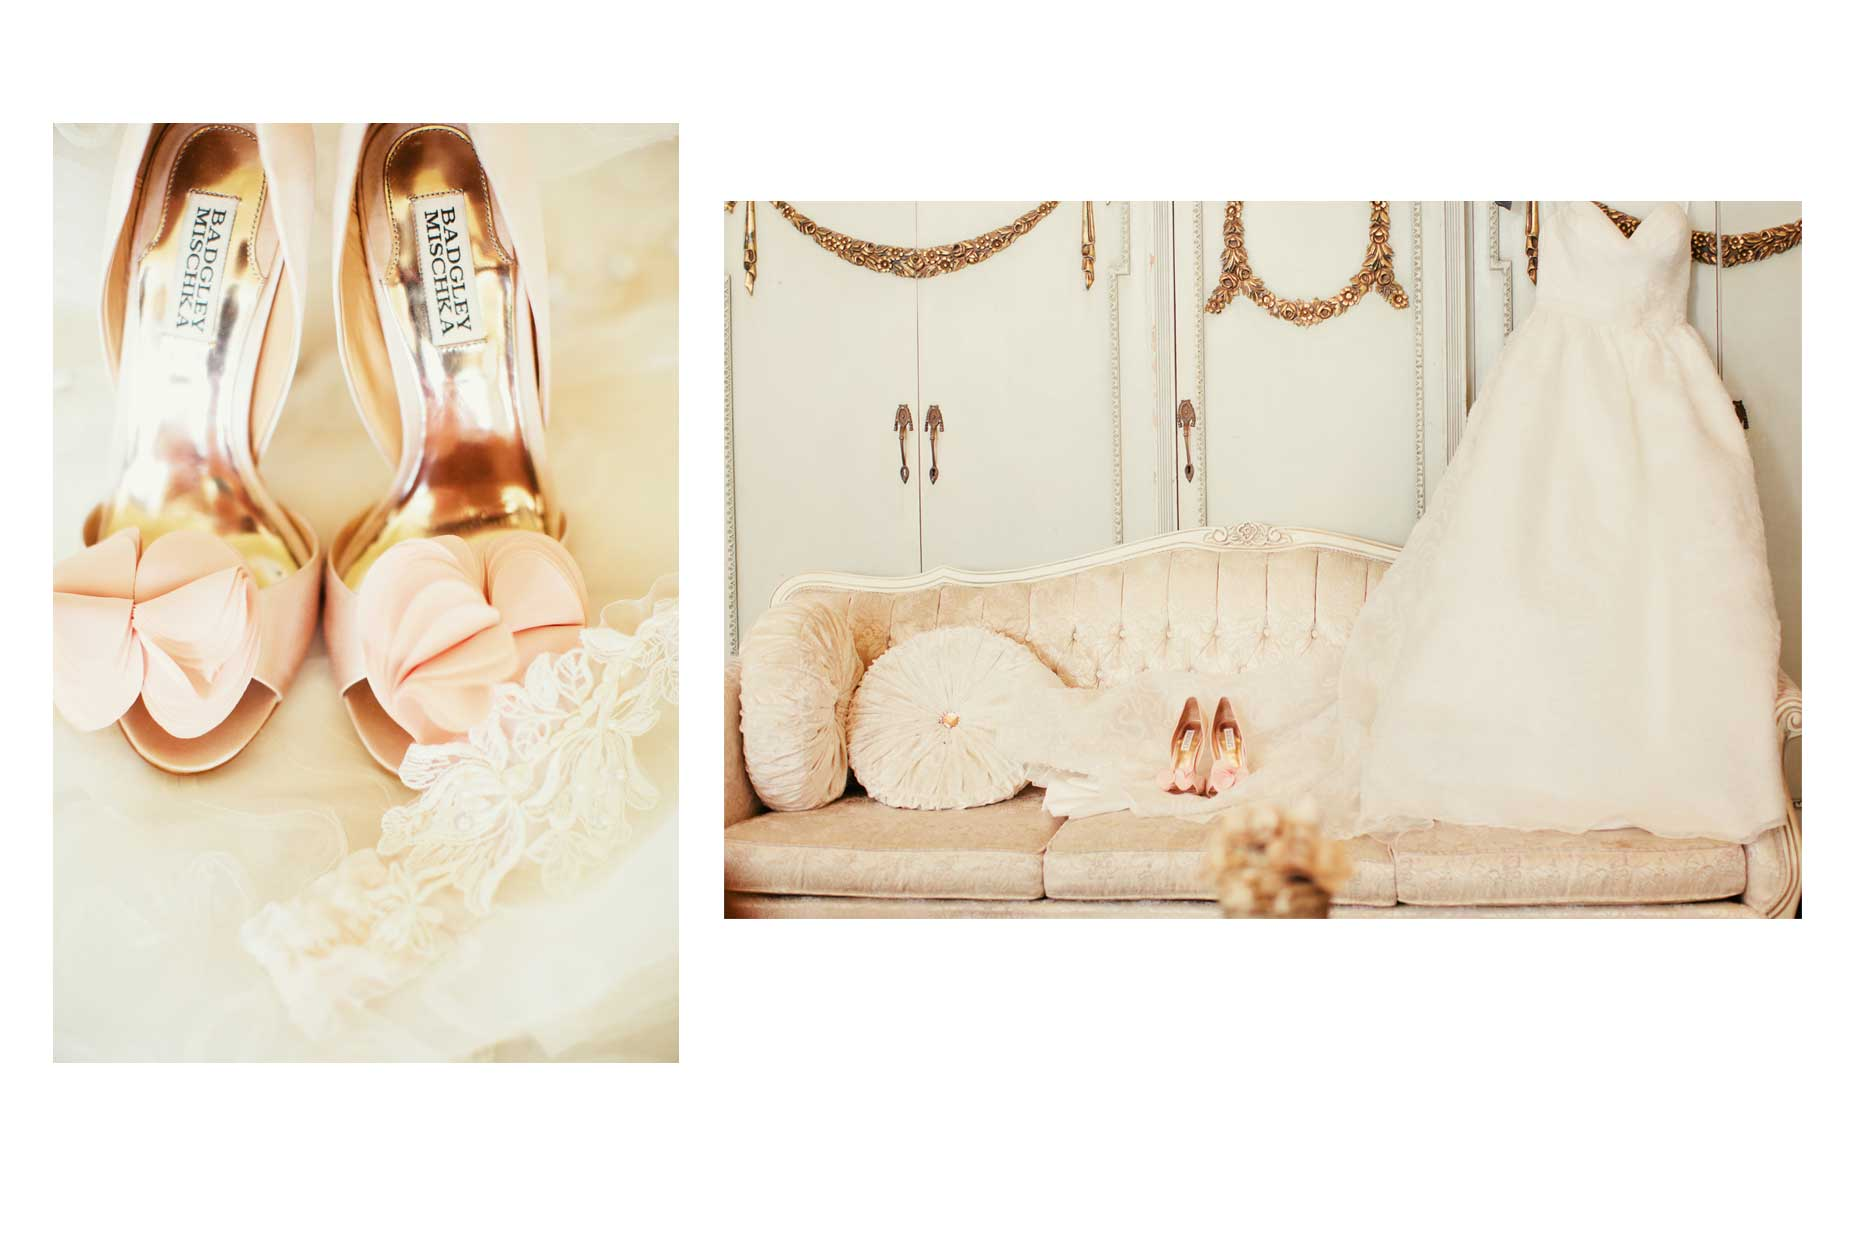 28-pierre-olivier-photography-_-wedding-dress-and-shoes